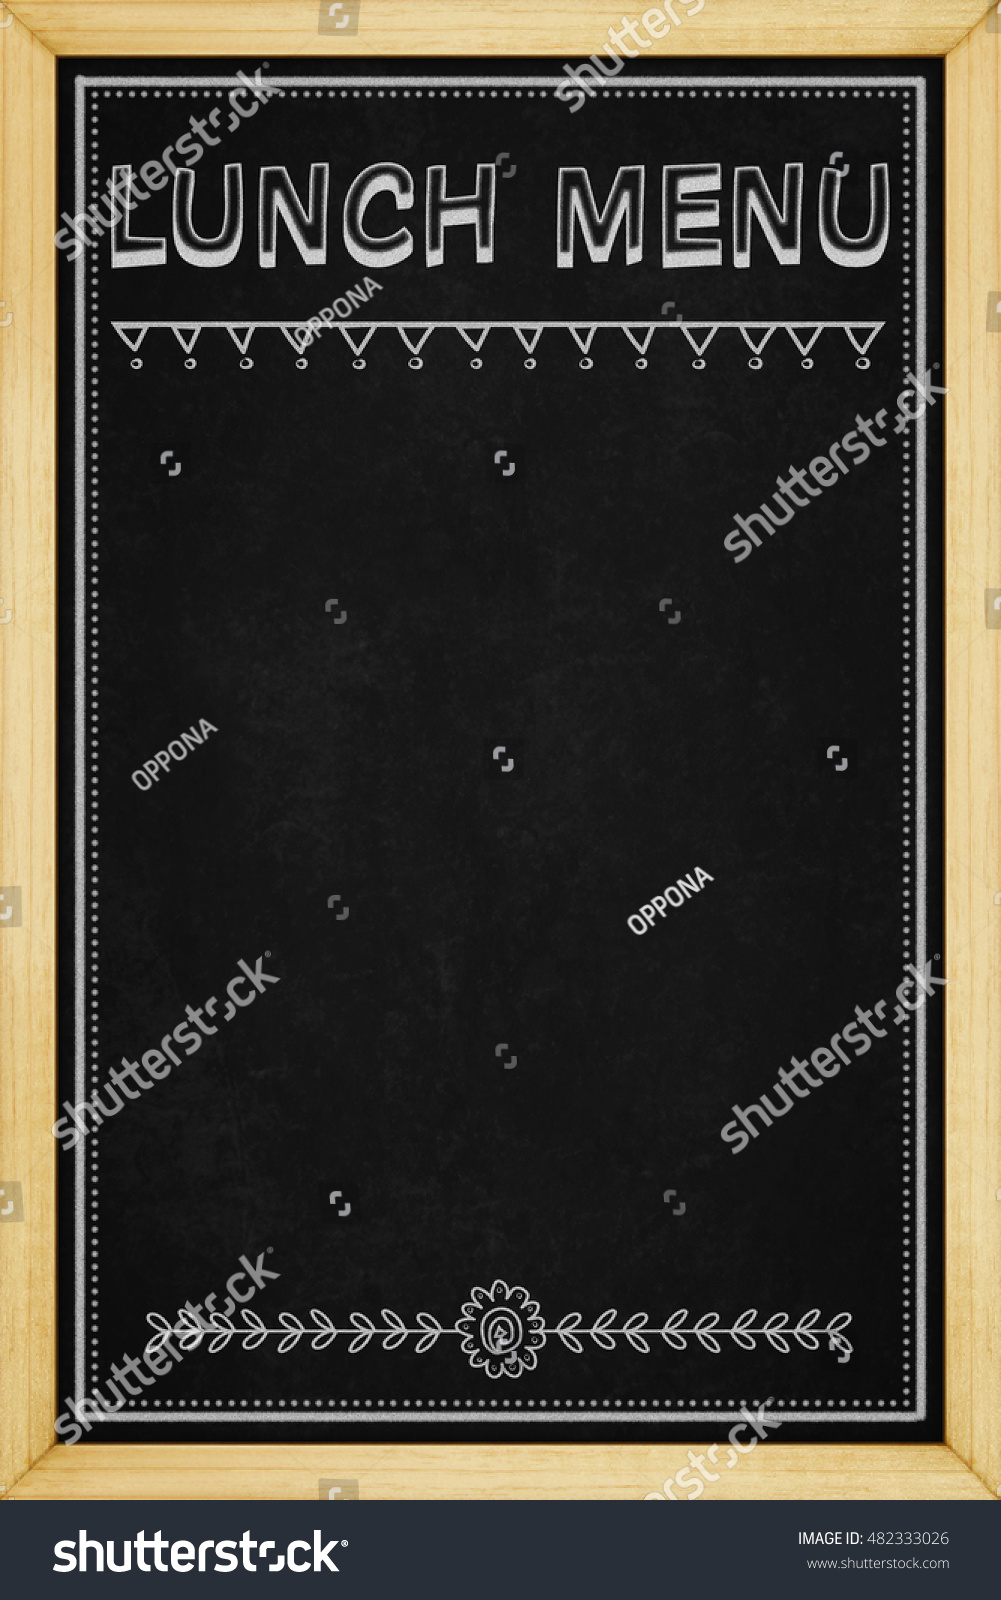 lunch menu sign blackboard wooden frame stock illustration 482333026